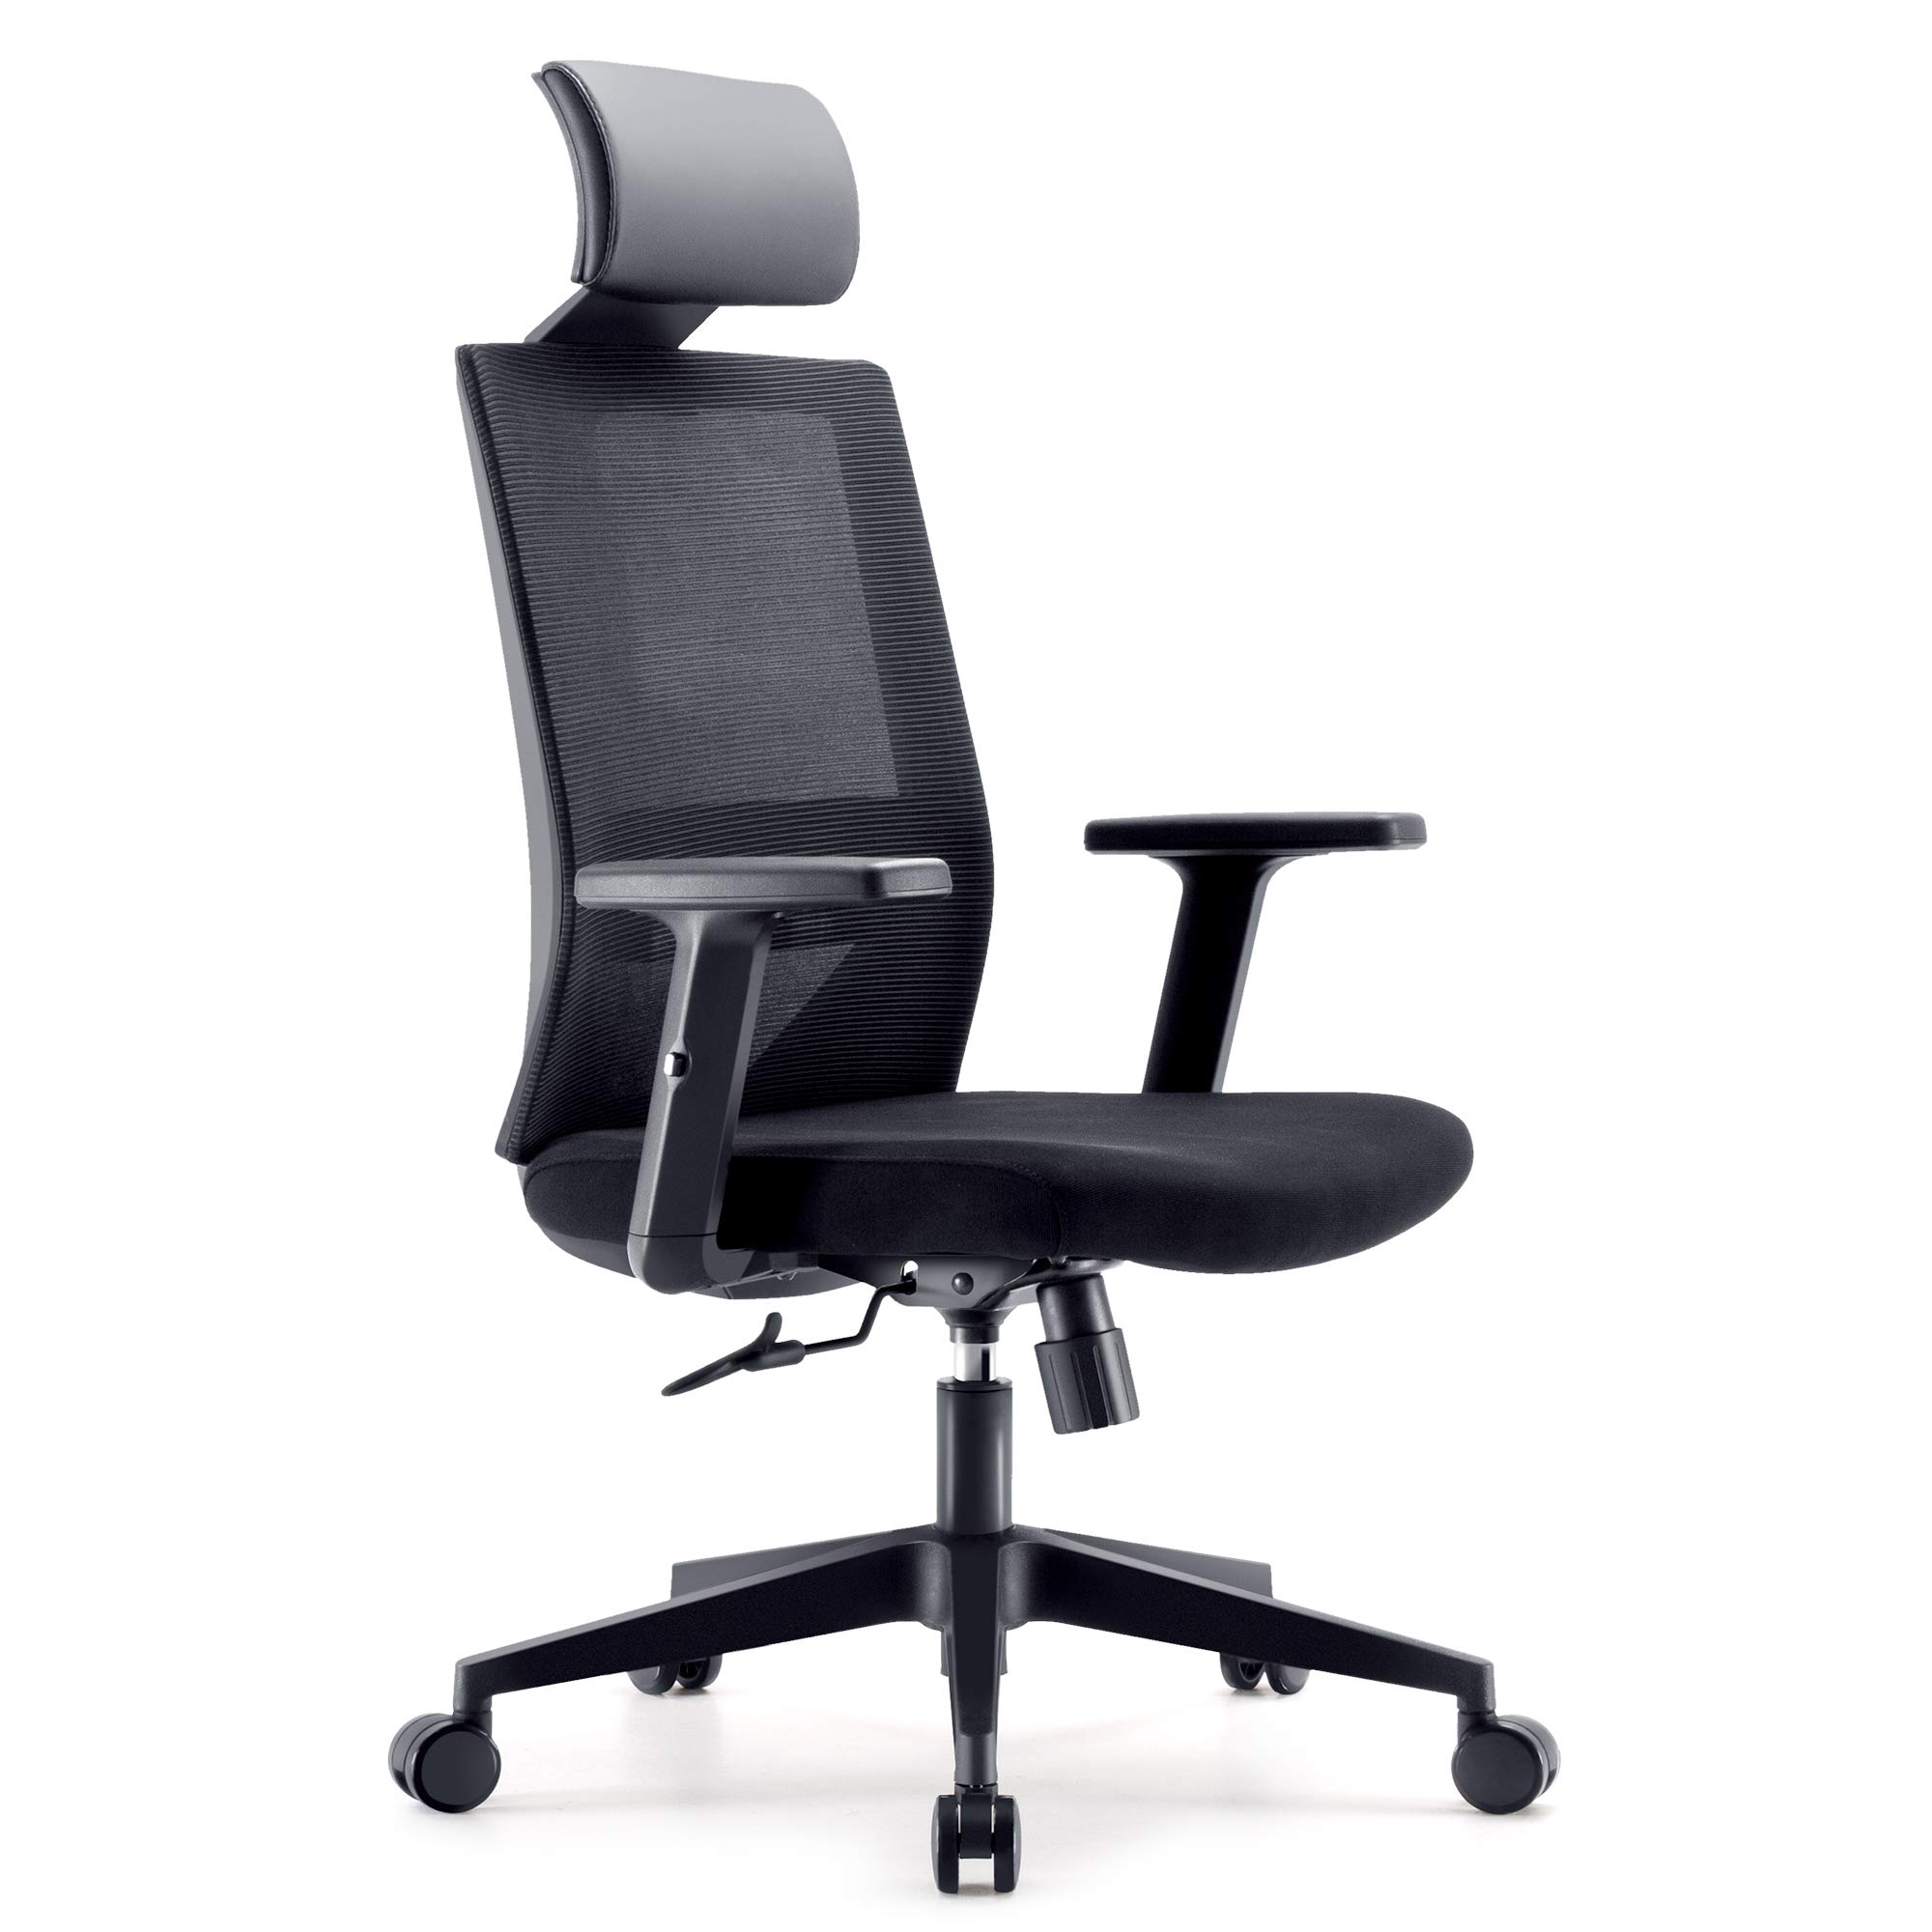 SIHOO M72-M101 Ergonomics Office Computer Desk Chair, Adjustable Headrests Chair Backrest and Armrest's Mesh Chair (Black)